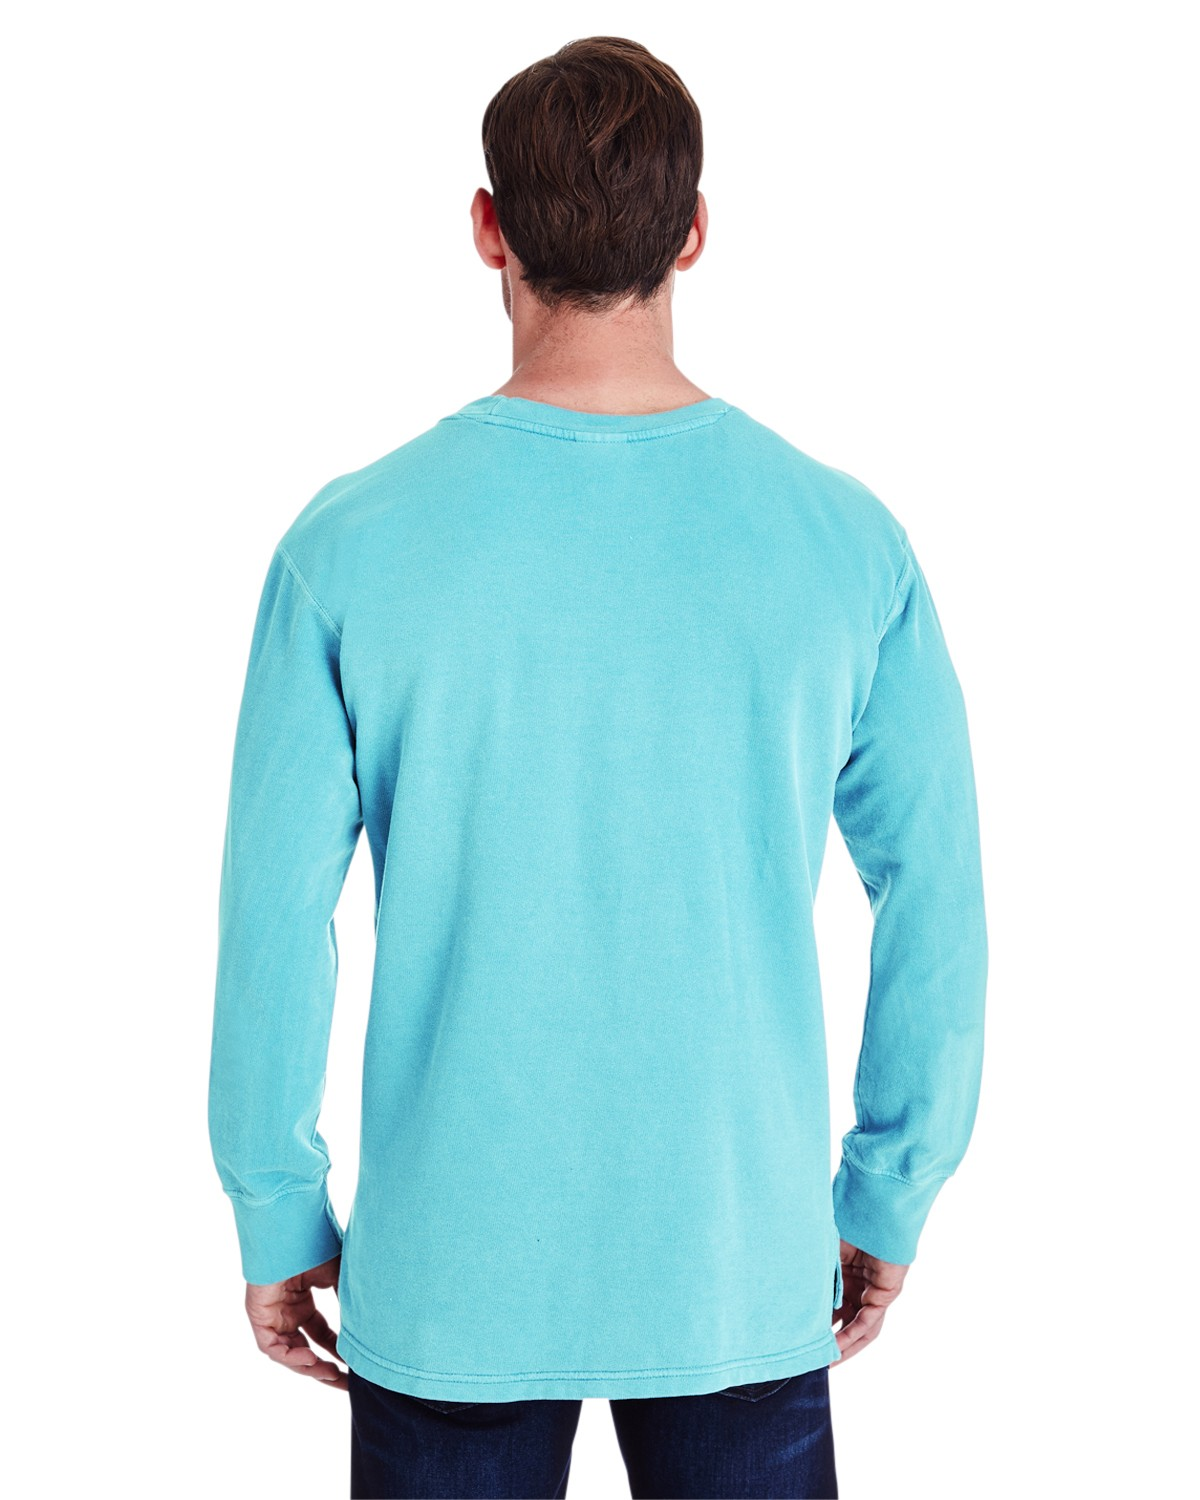 C1536 Comfort Colors LAGOON BLUE